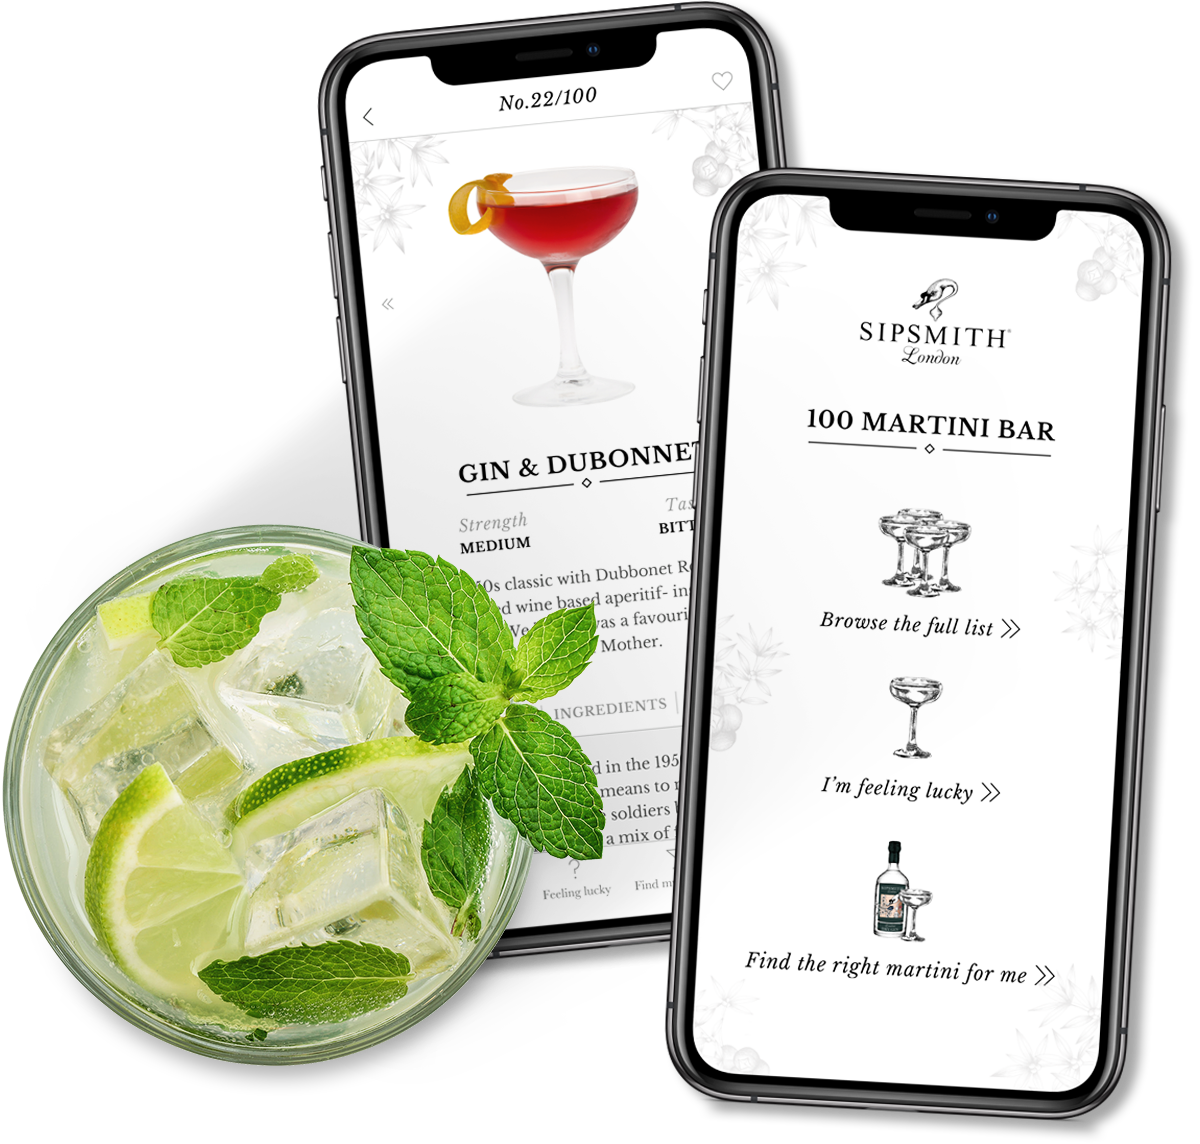 Sipsmith native app design